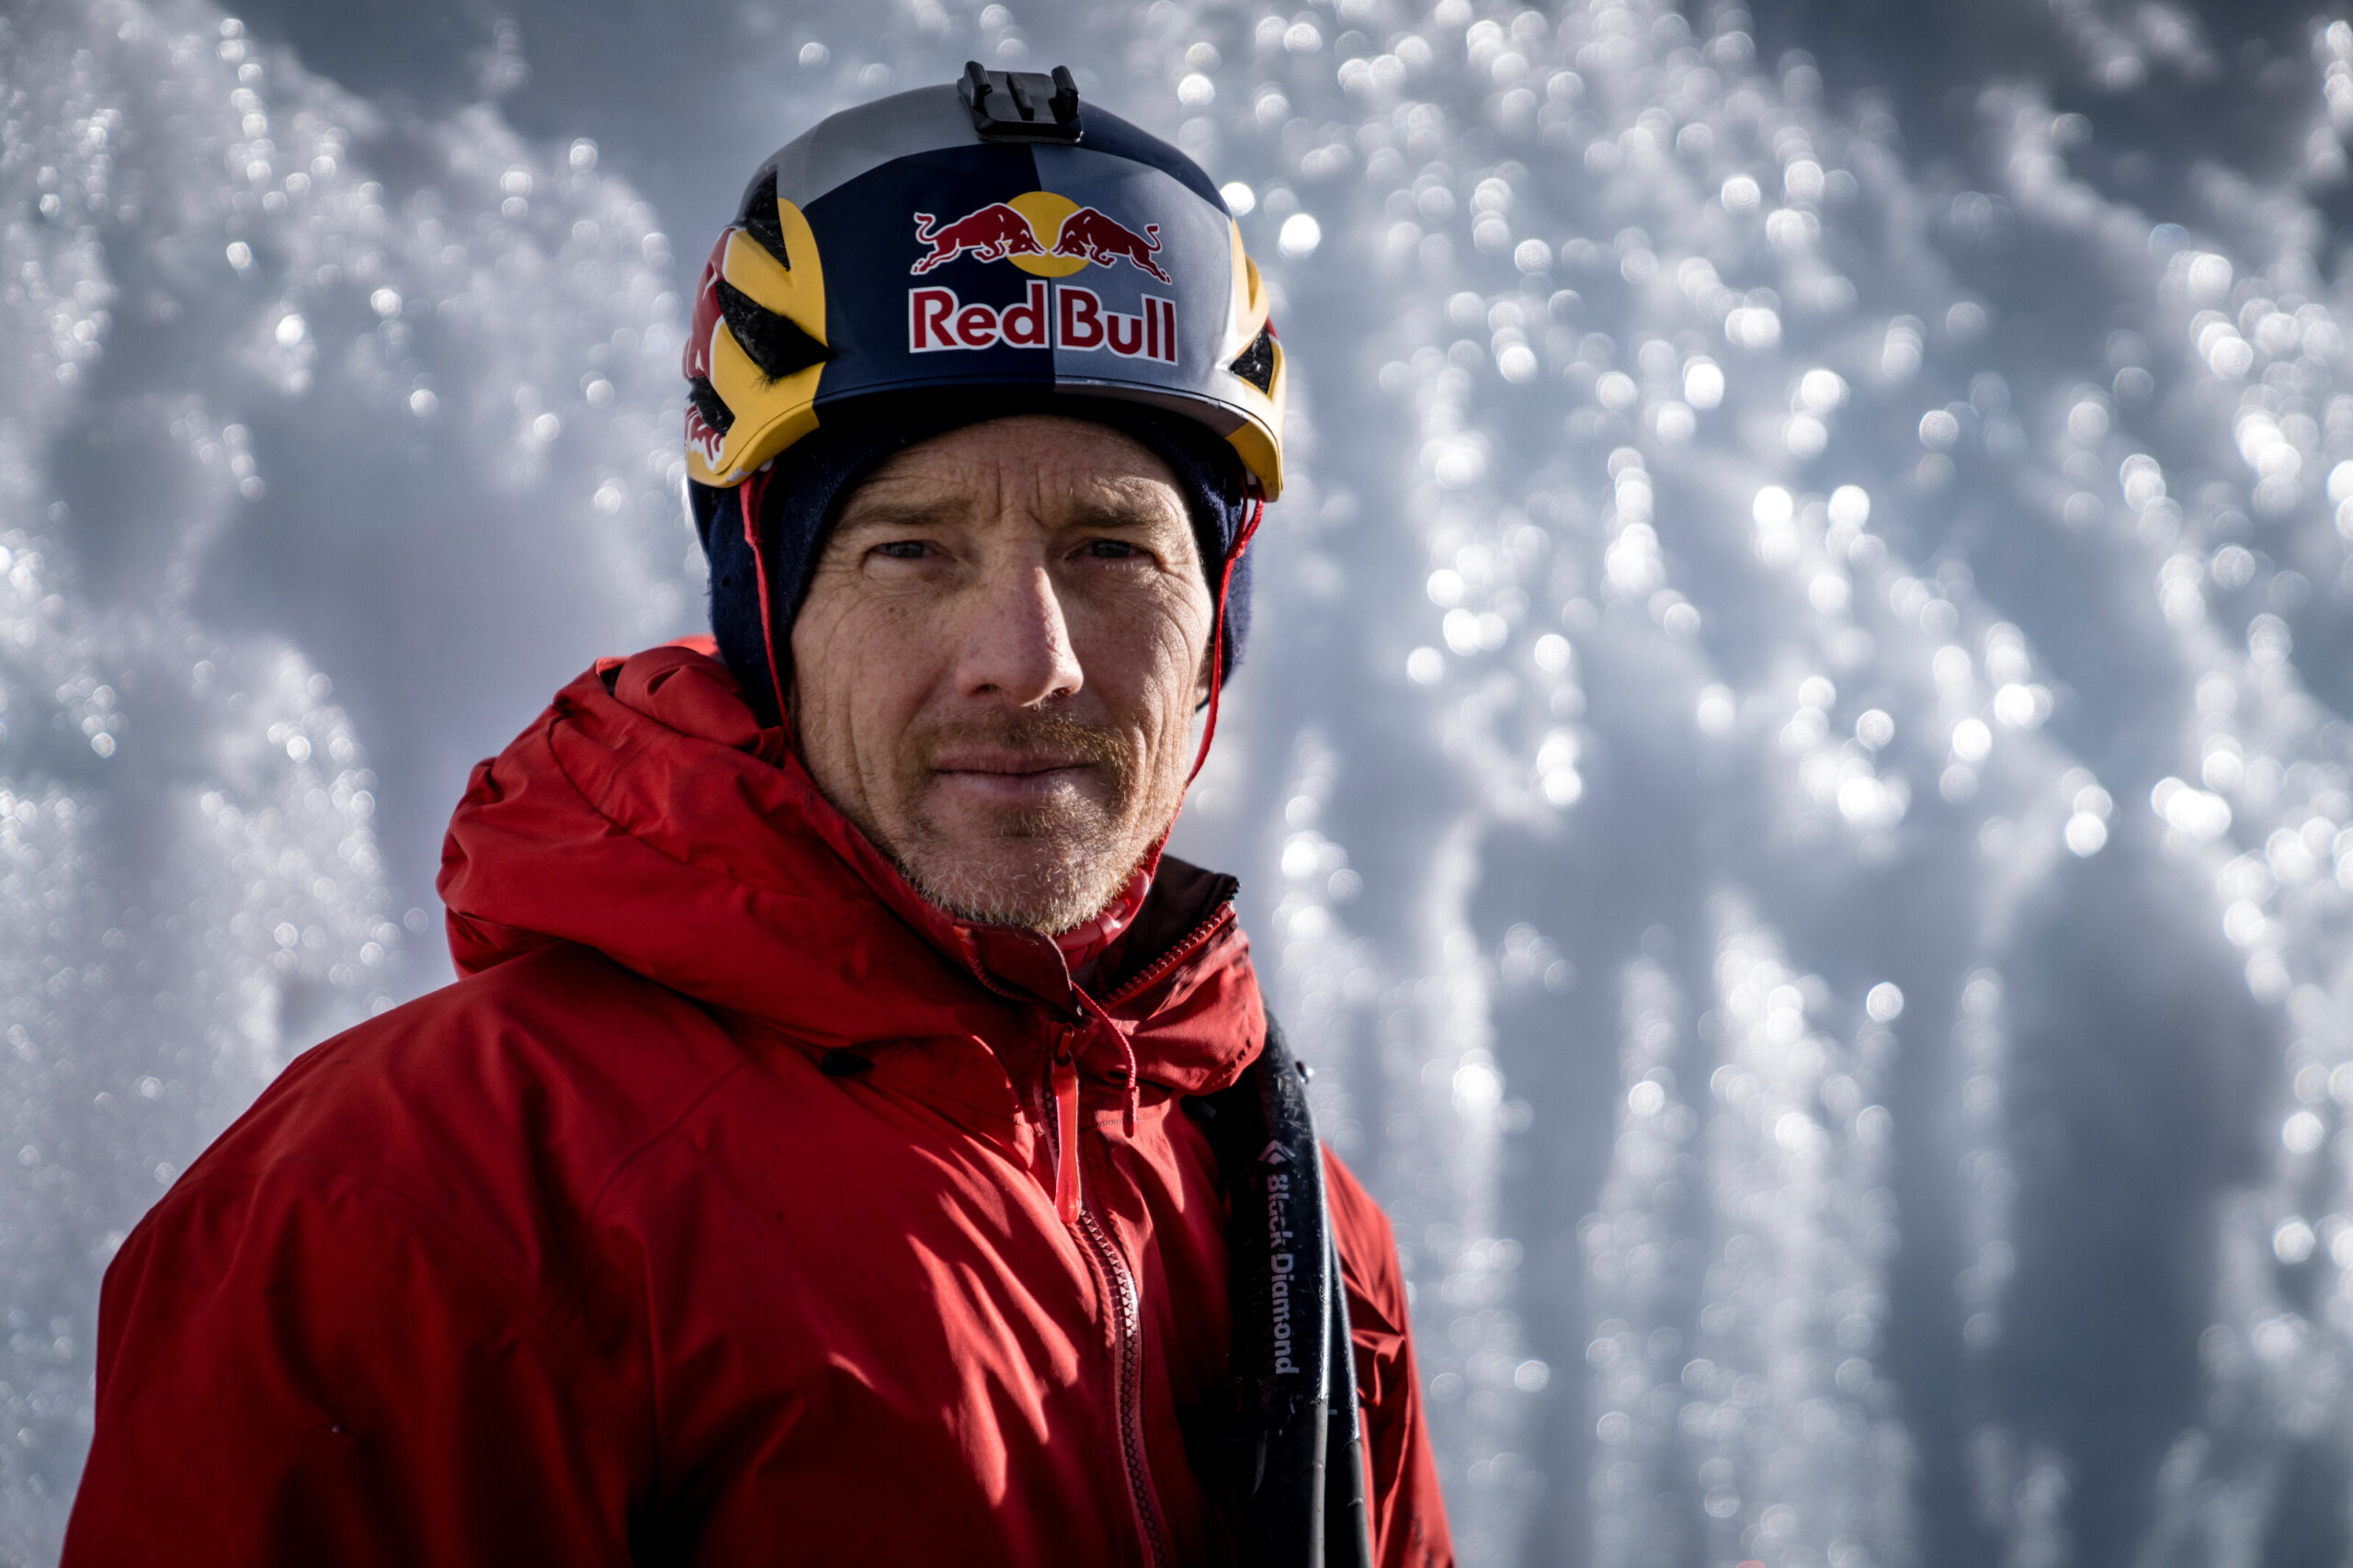 Will Gadd poses for a portrait on Mt Kilimanjaro on 23 February, 2020 in Tanzania, Africa. // Christian Pondella/Red Bull Content Pool